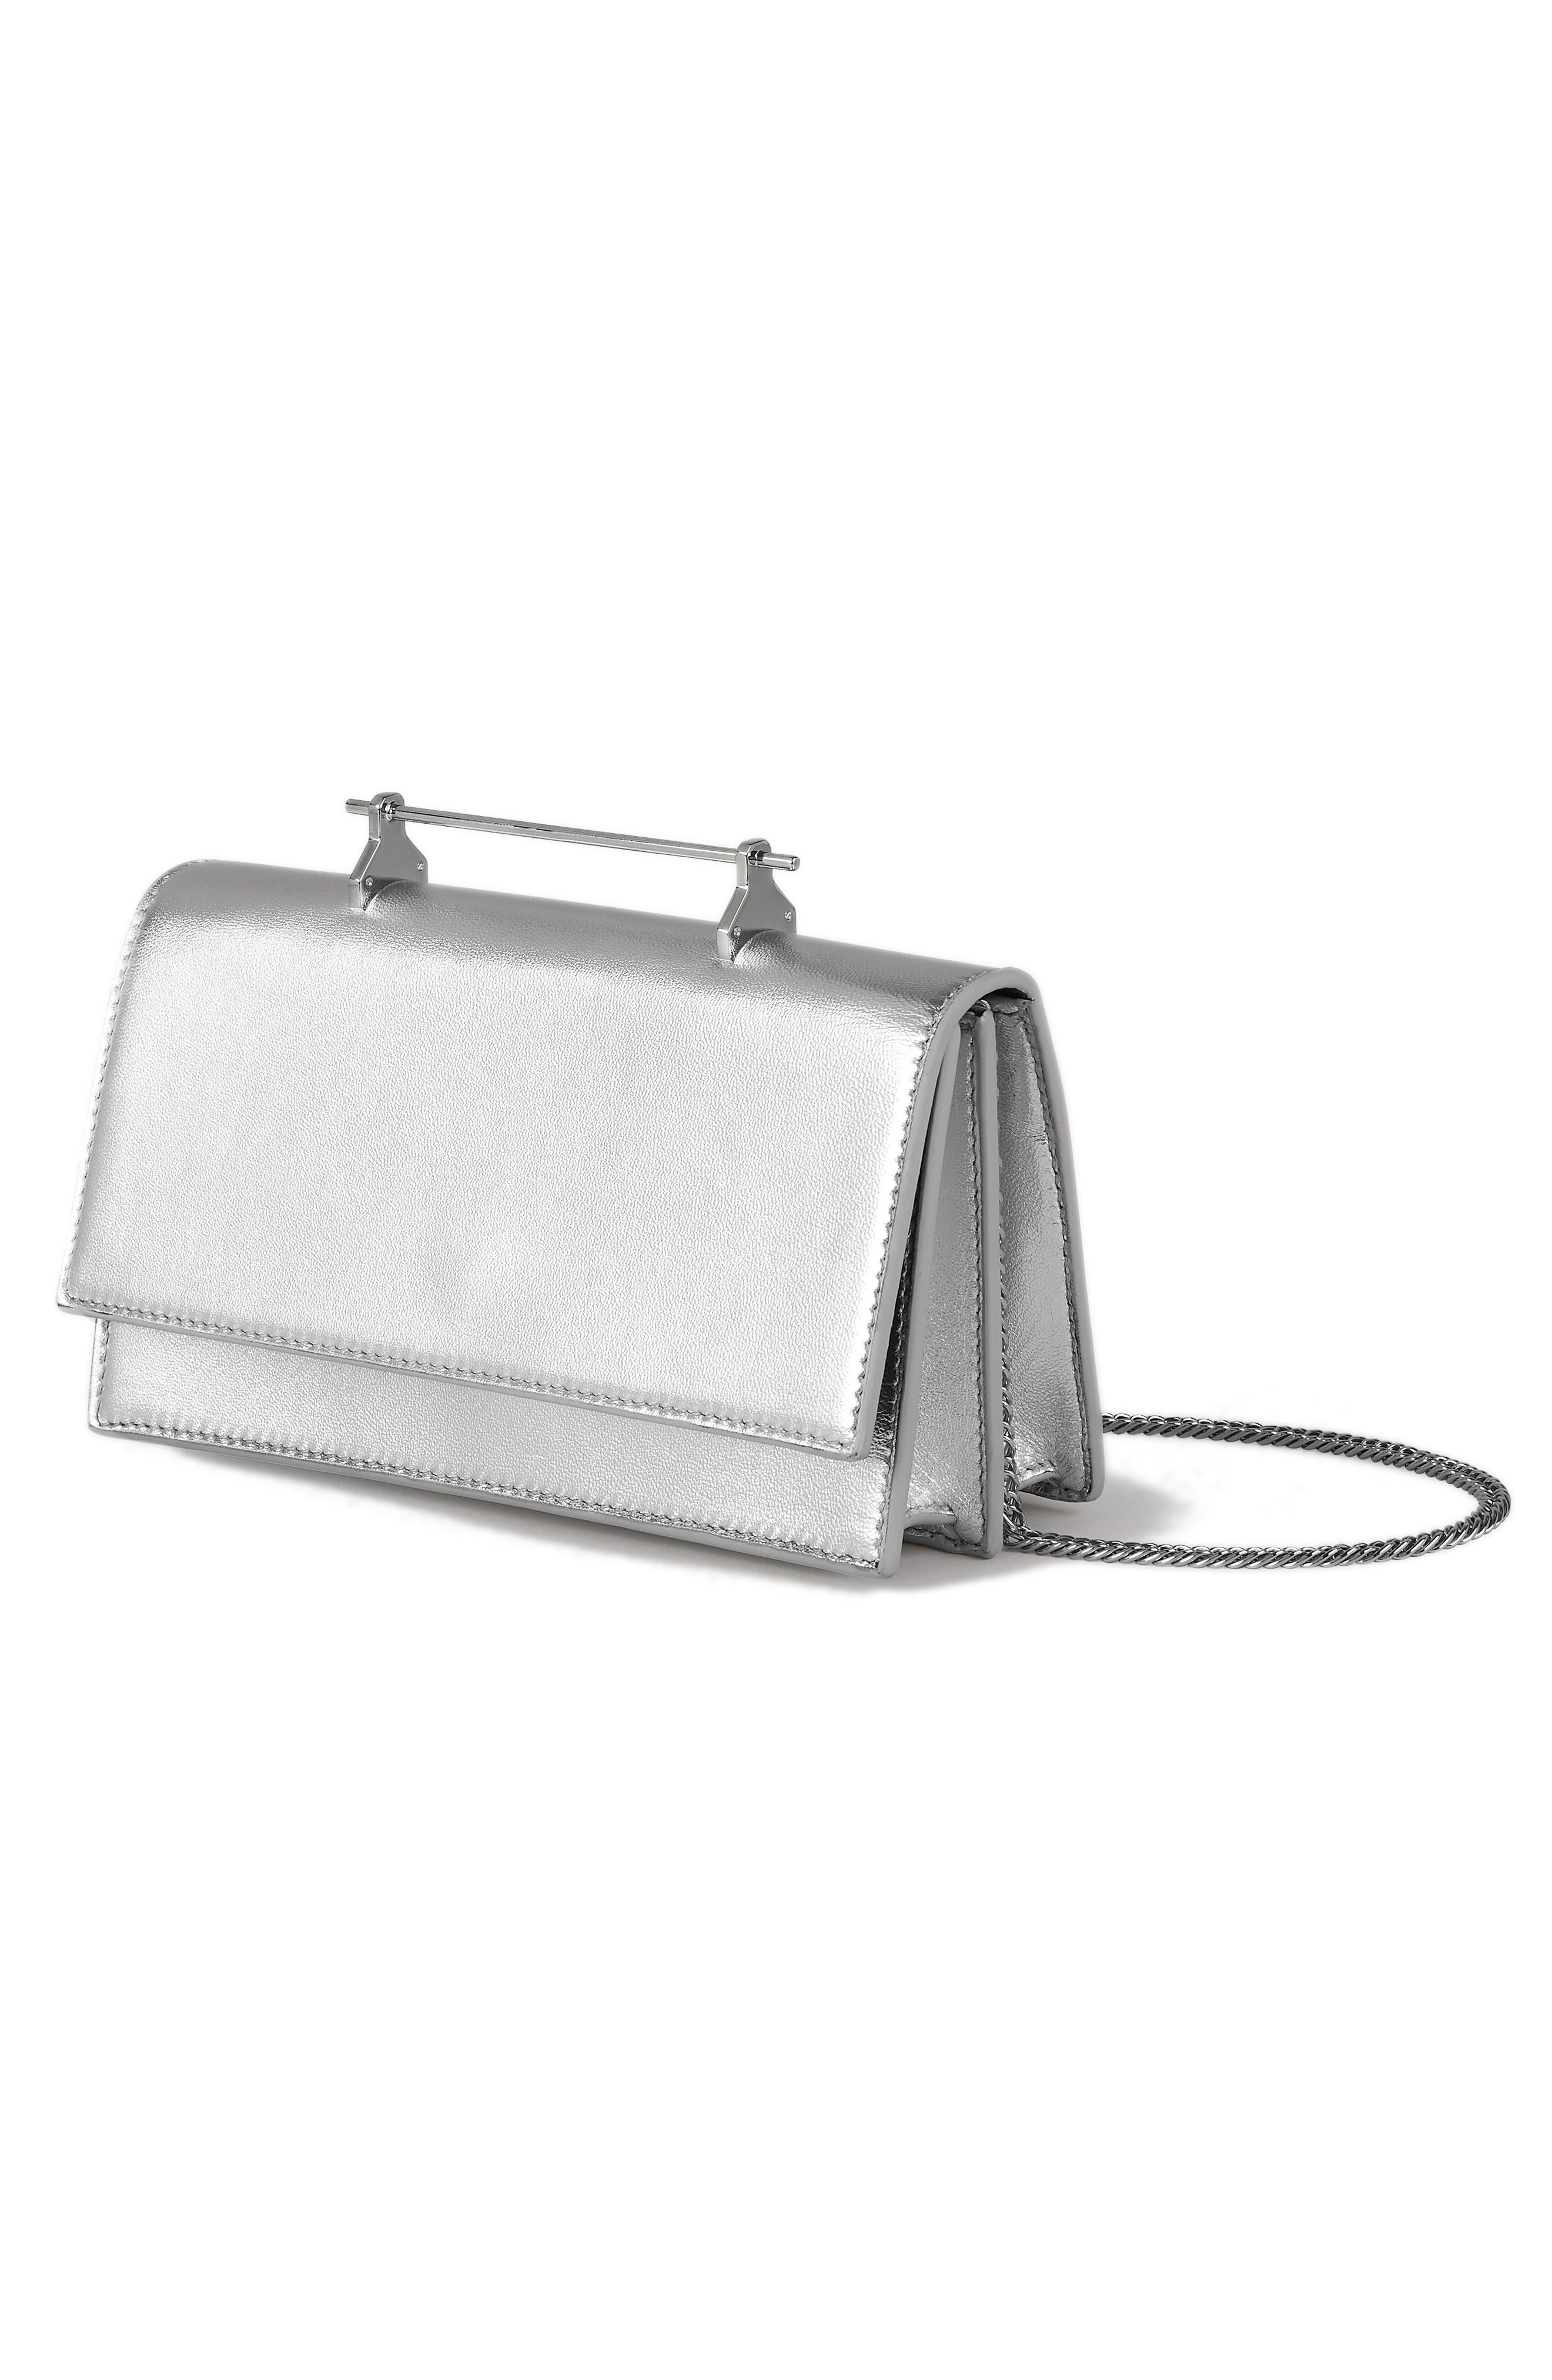 Alexia Metallic Leather Shoulder Bag,                             Alternate thumbnail 3, color,                             040